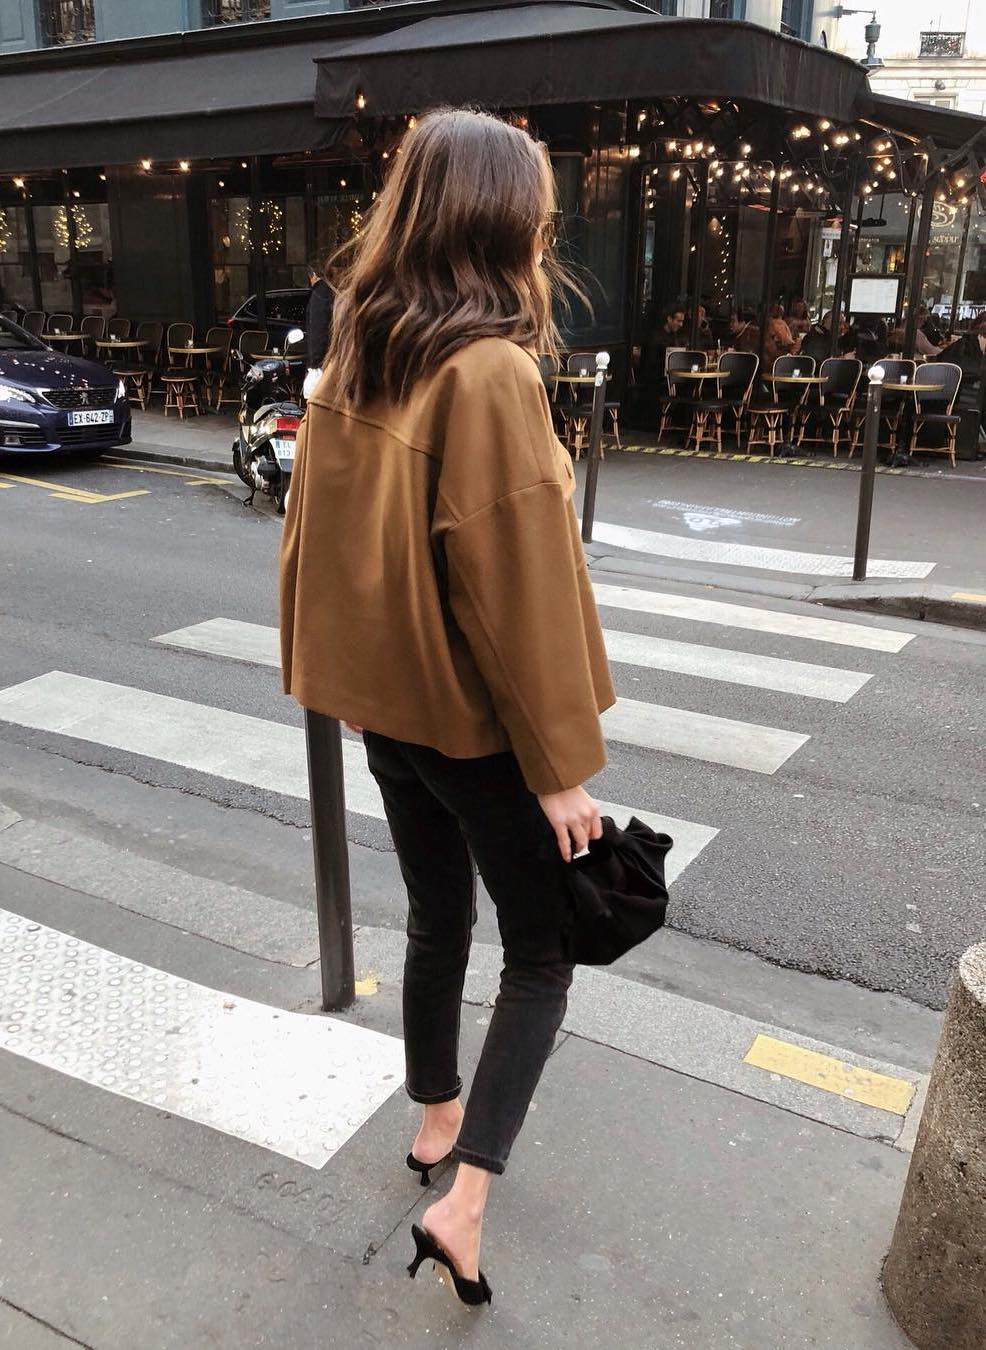 Viral Instagram Look — Spring outfit idea from Felicia Akerstrom in a cropped camel jacket, skinny black jeans, and black mule kitten heels